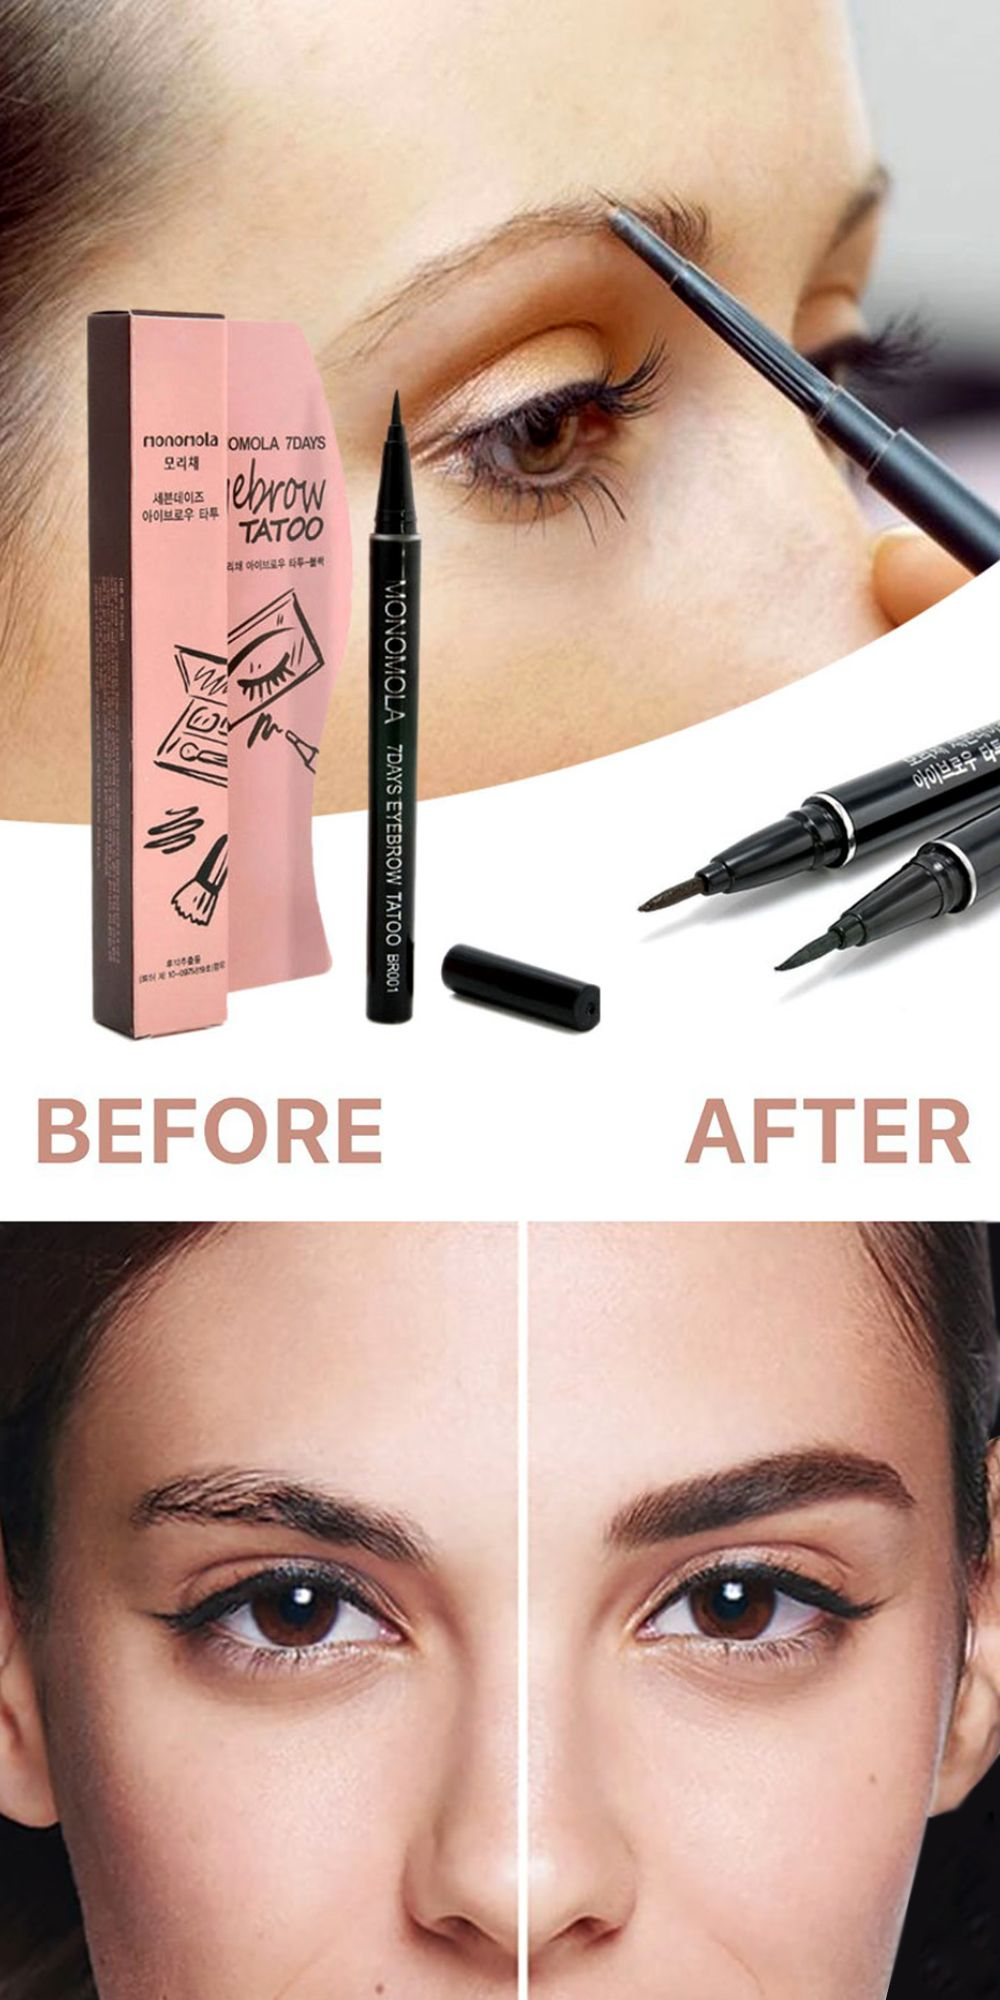 Eyebrow Tattoo Pen Eyebrow tattoo, Eyebrows, Healthy